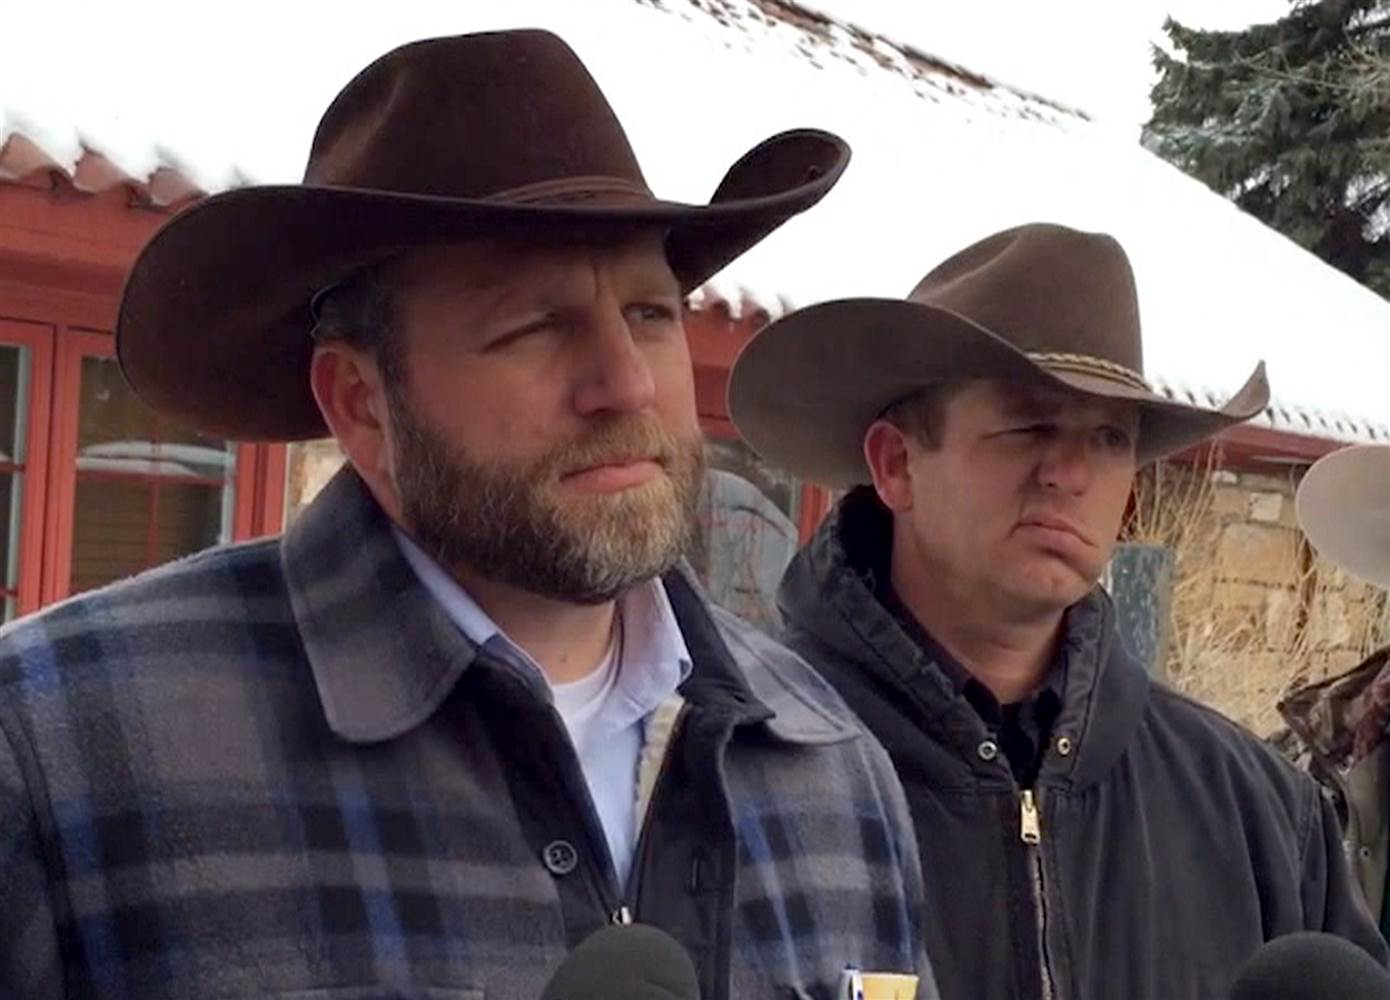 160104-ammon-ryan-bundy-jsw-717a_fdf46b5b9c0cbb504ccc25520dad928d-nbcnews-ux-2880-1000